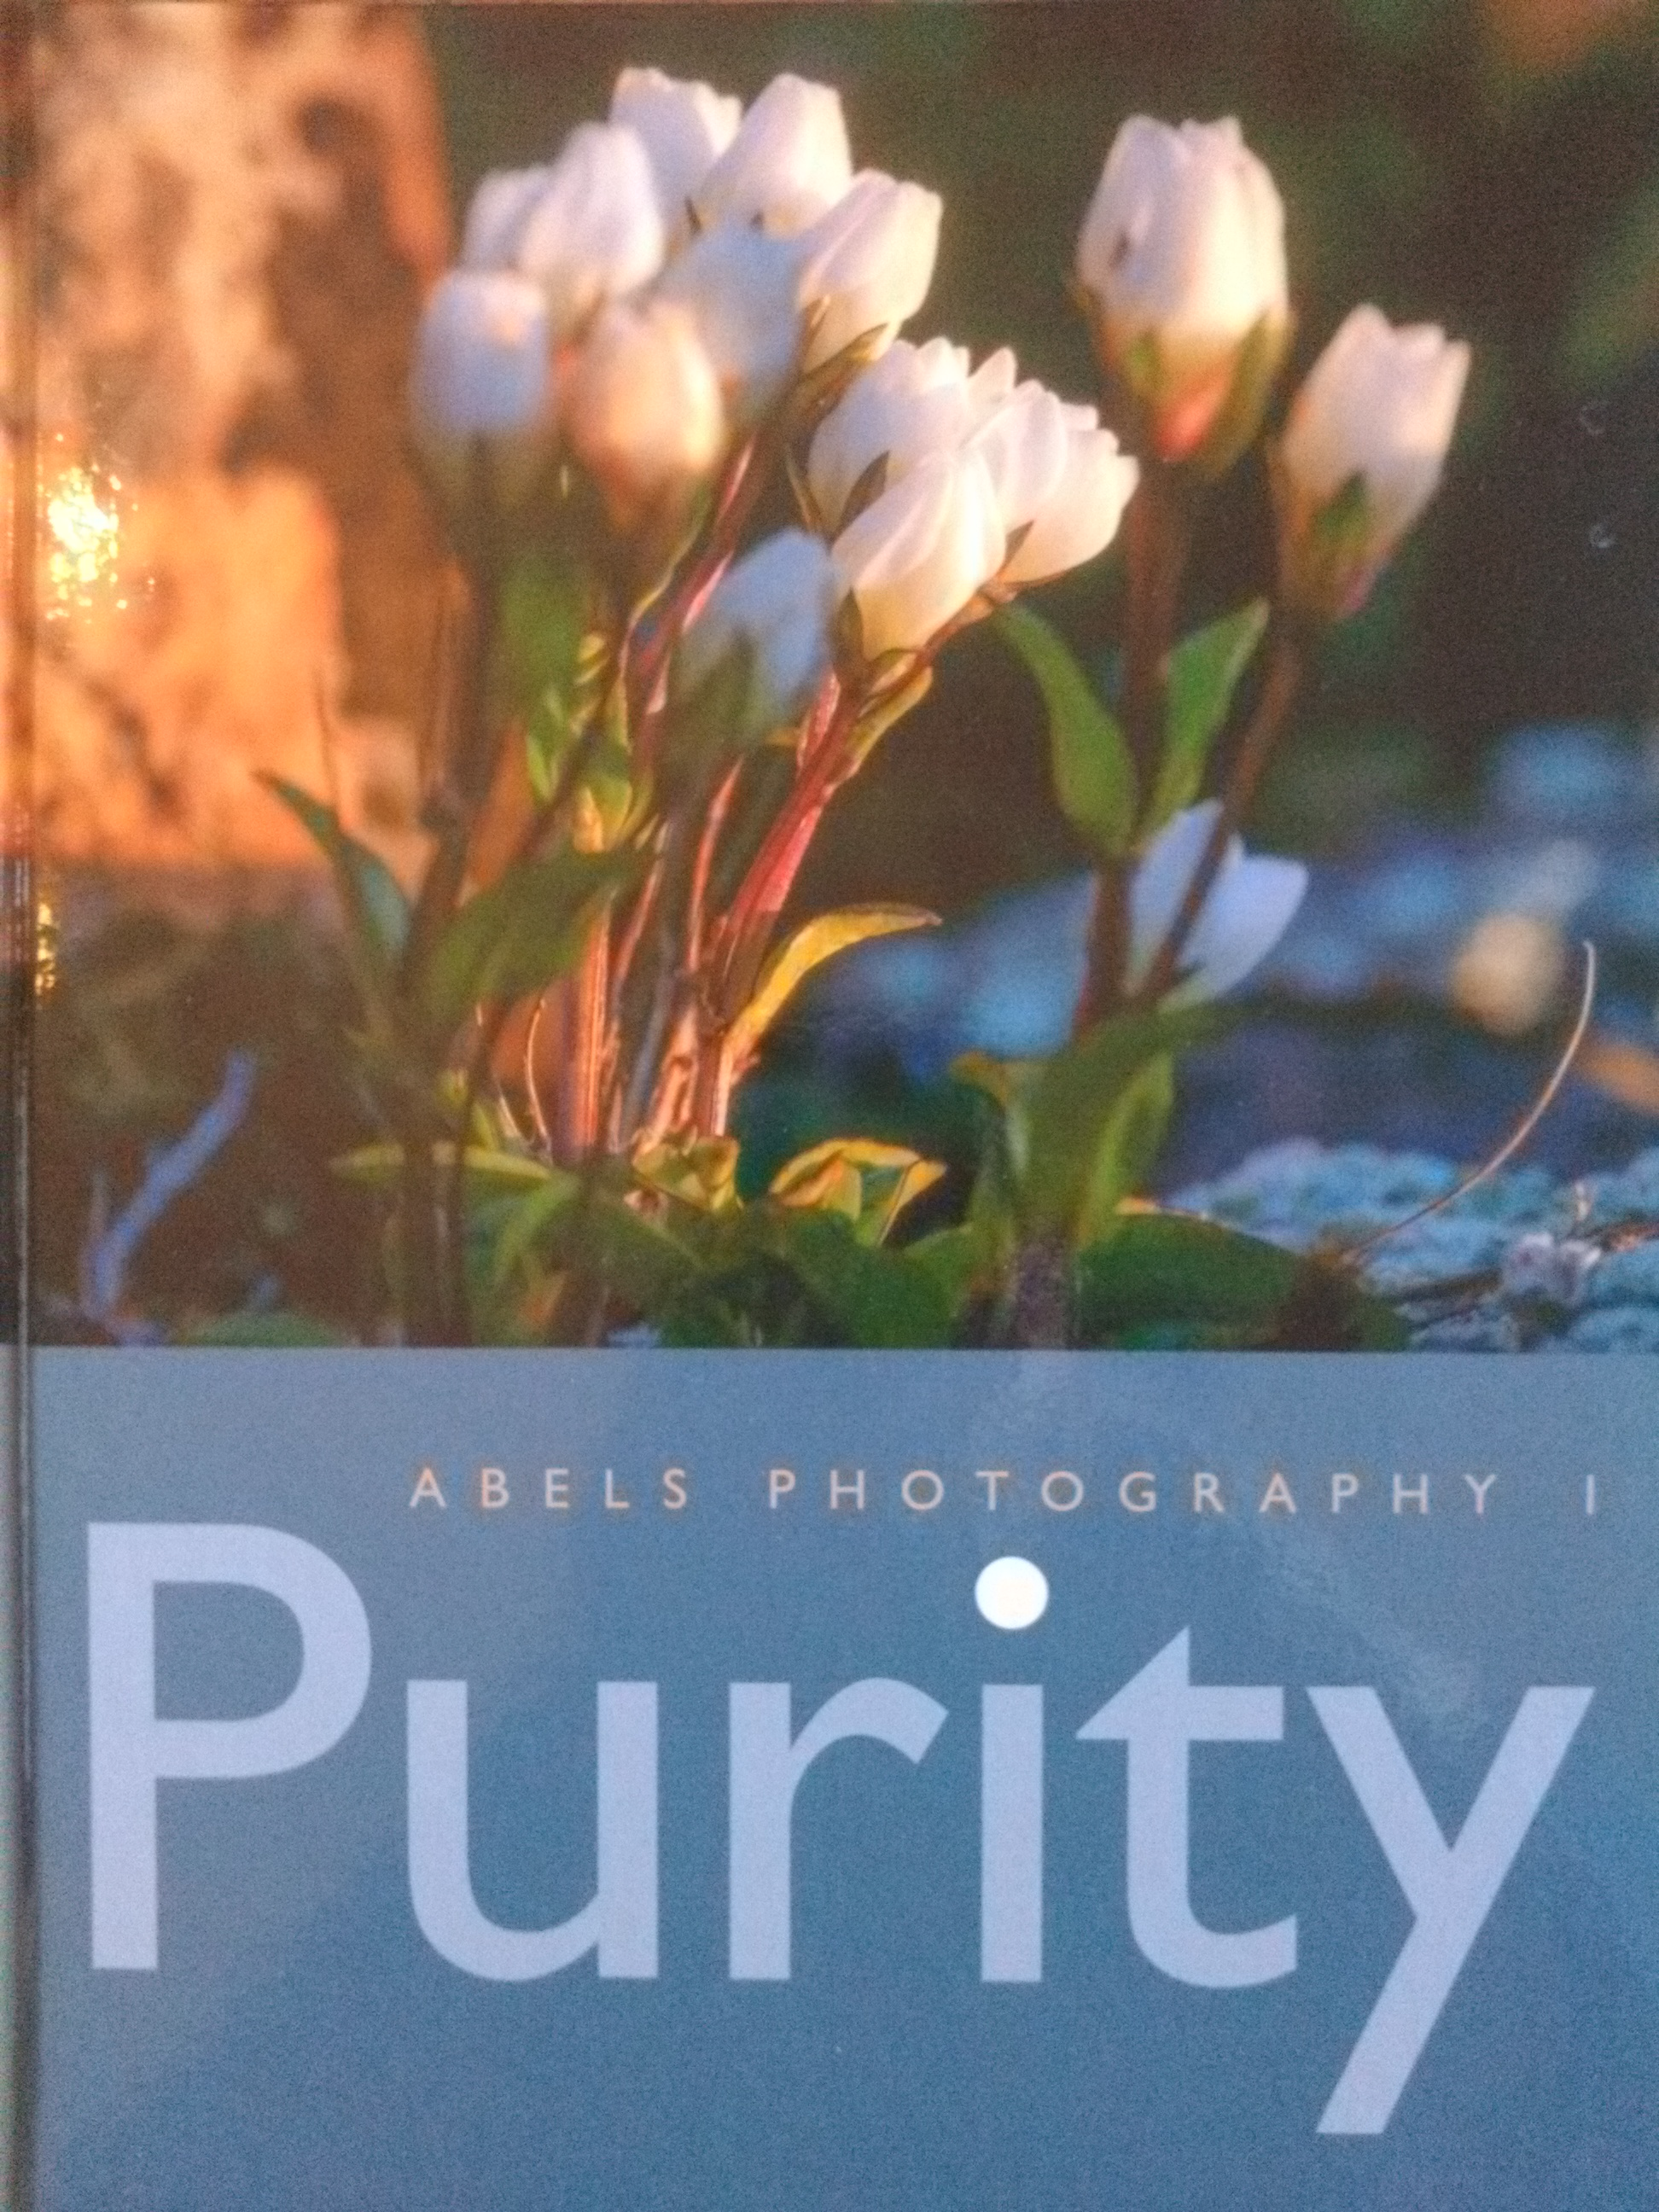 Purity - Abels Photography I